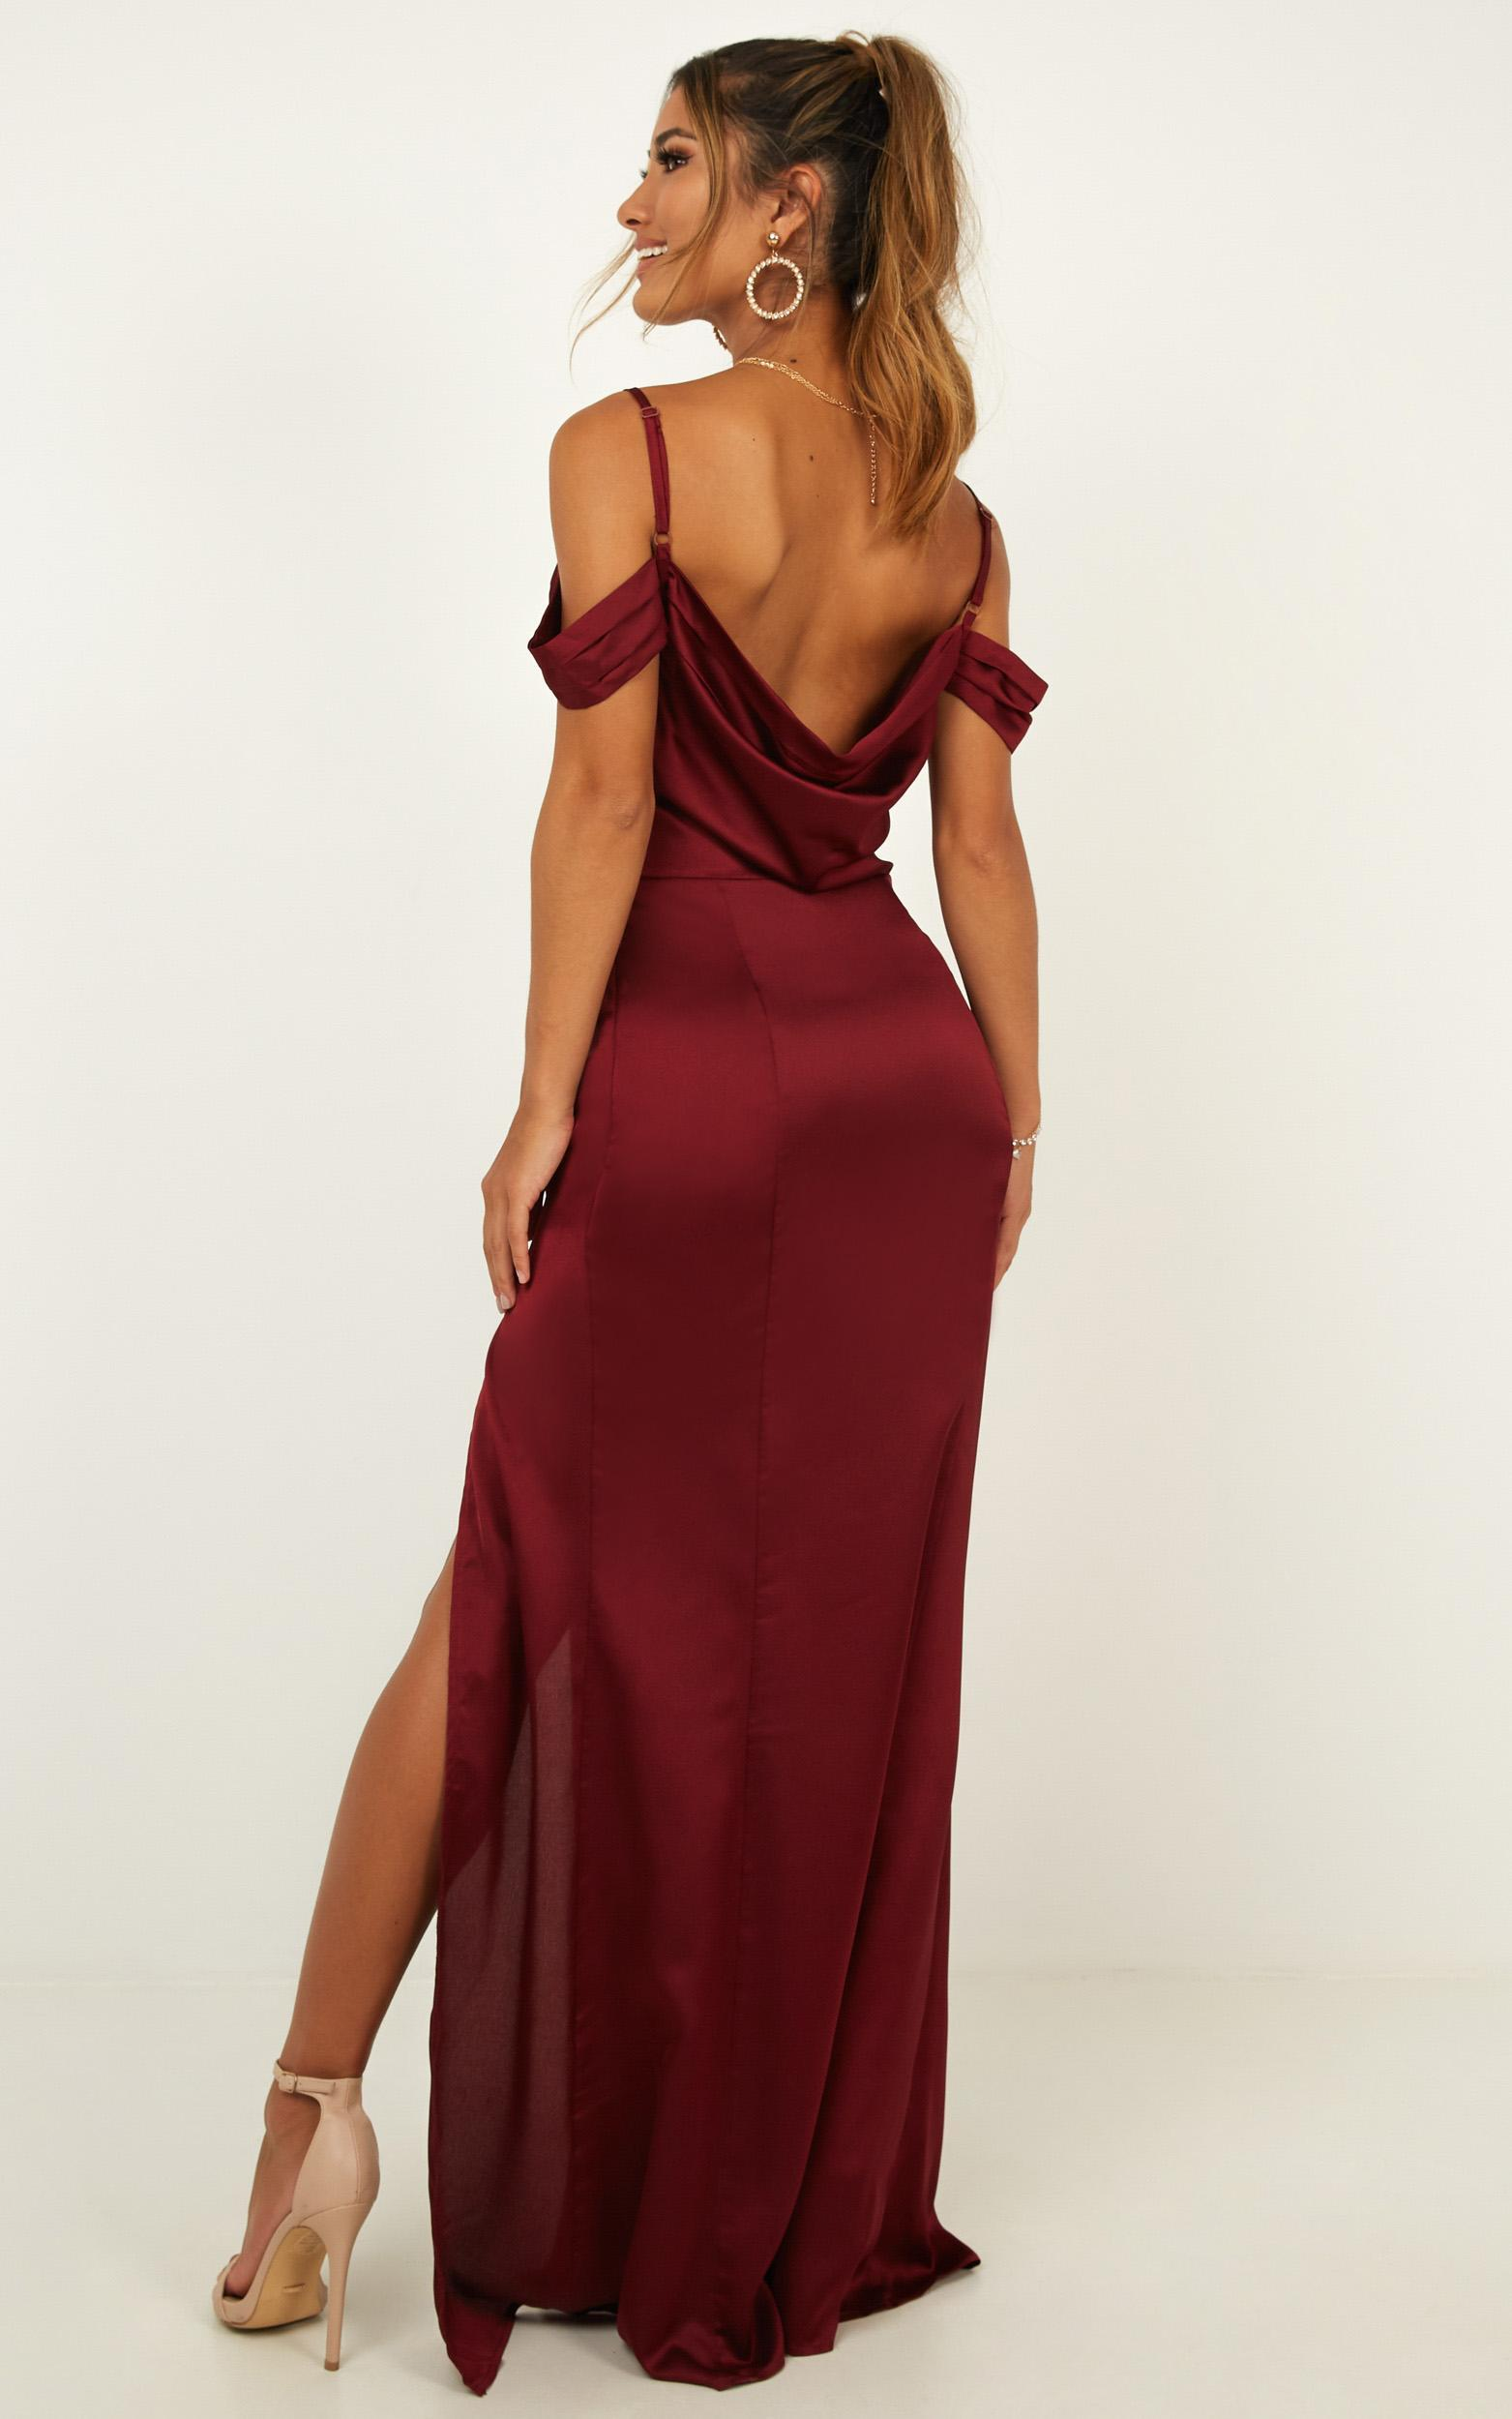 City Is Mine Dress in wine satin - 20 (XXXXL), Wine, hi-res image number null